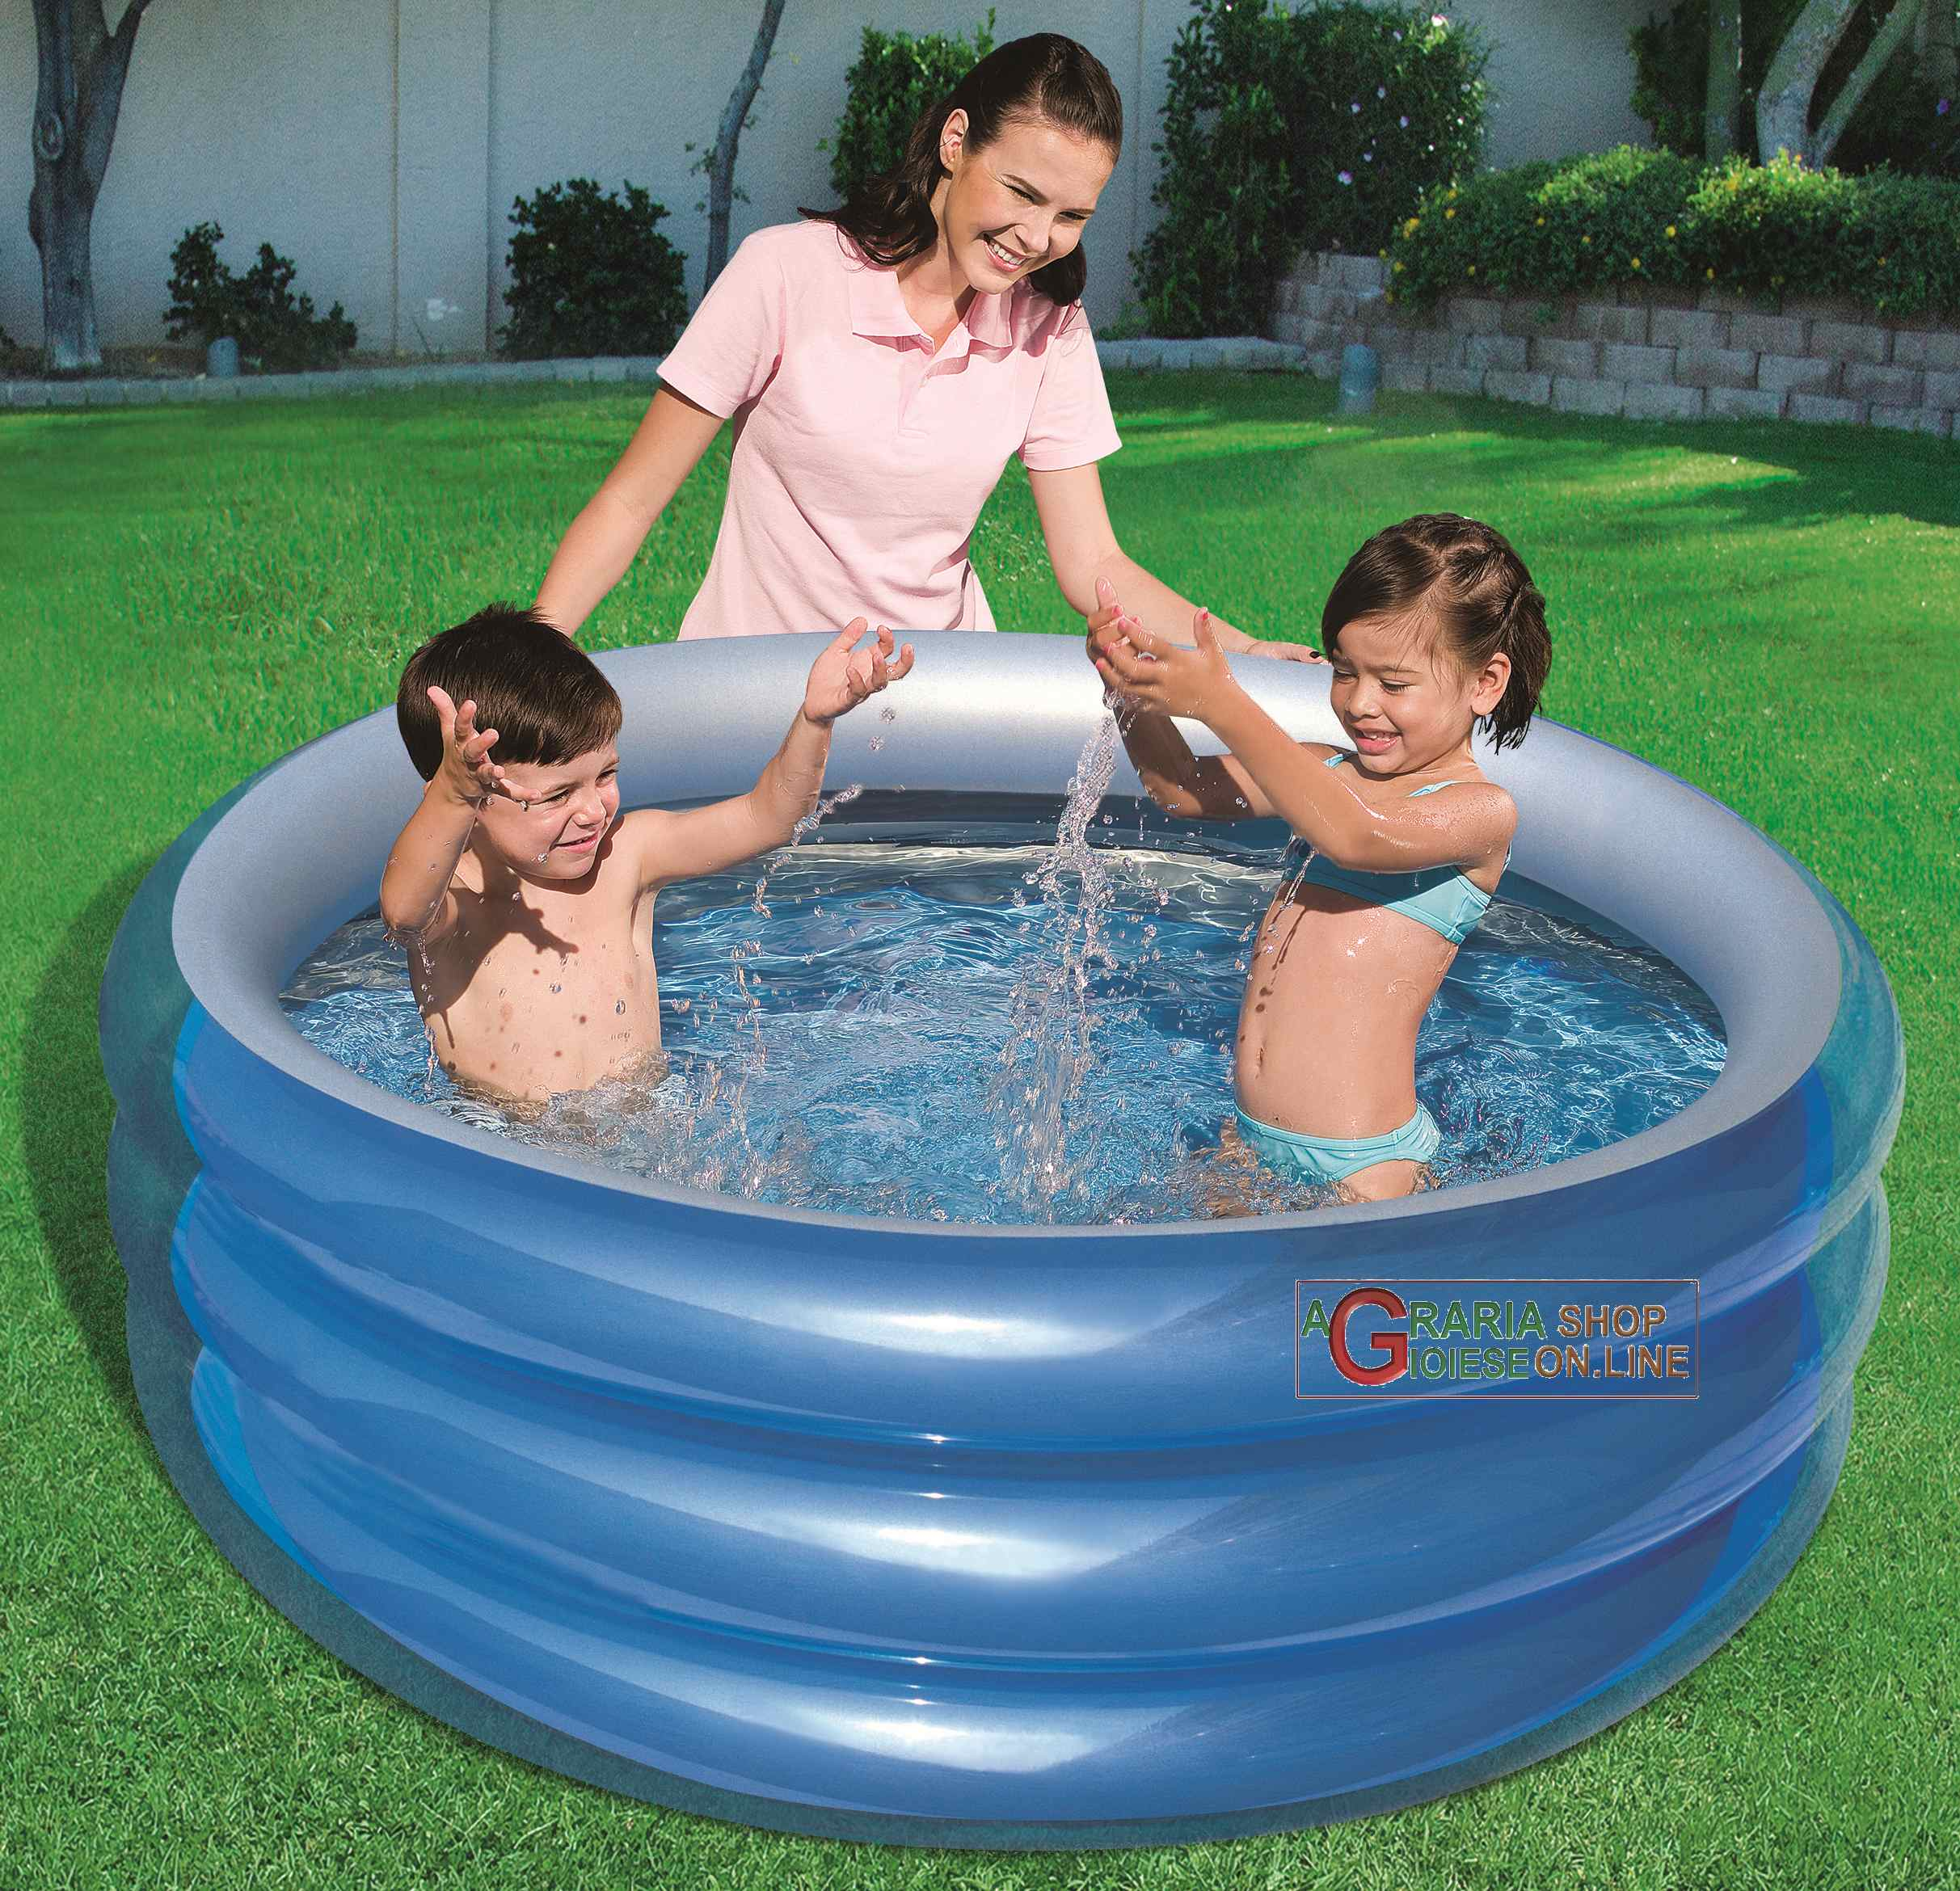 Bestway Piscinas Bestway 51041b Pool Round Blue For Children Cm 150x53h Antonio De Caria